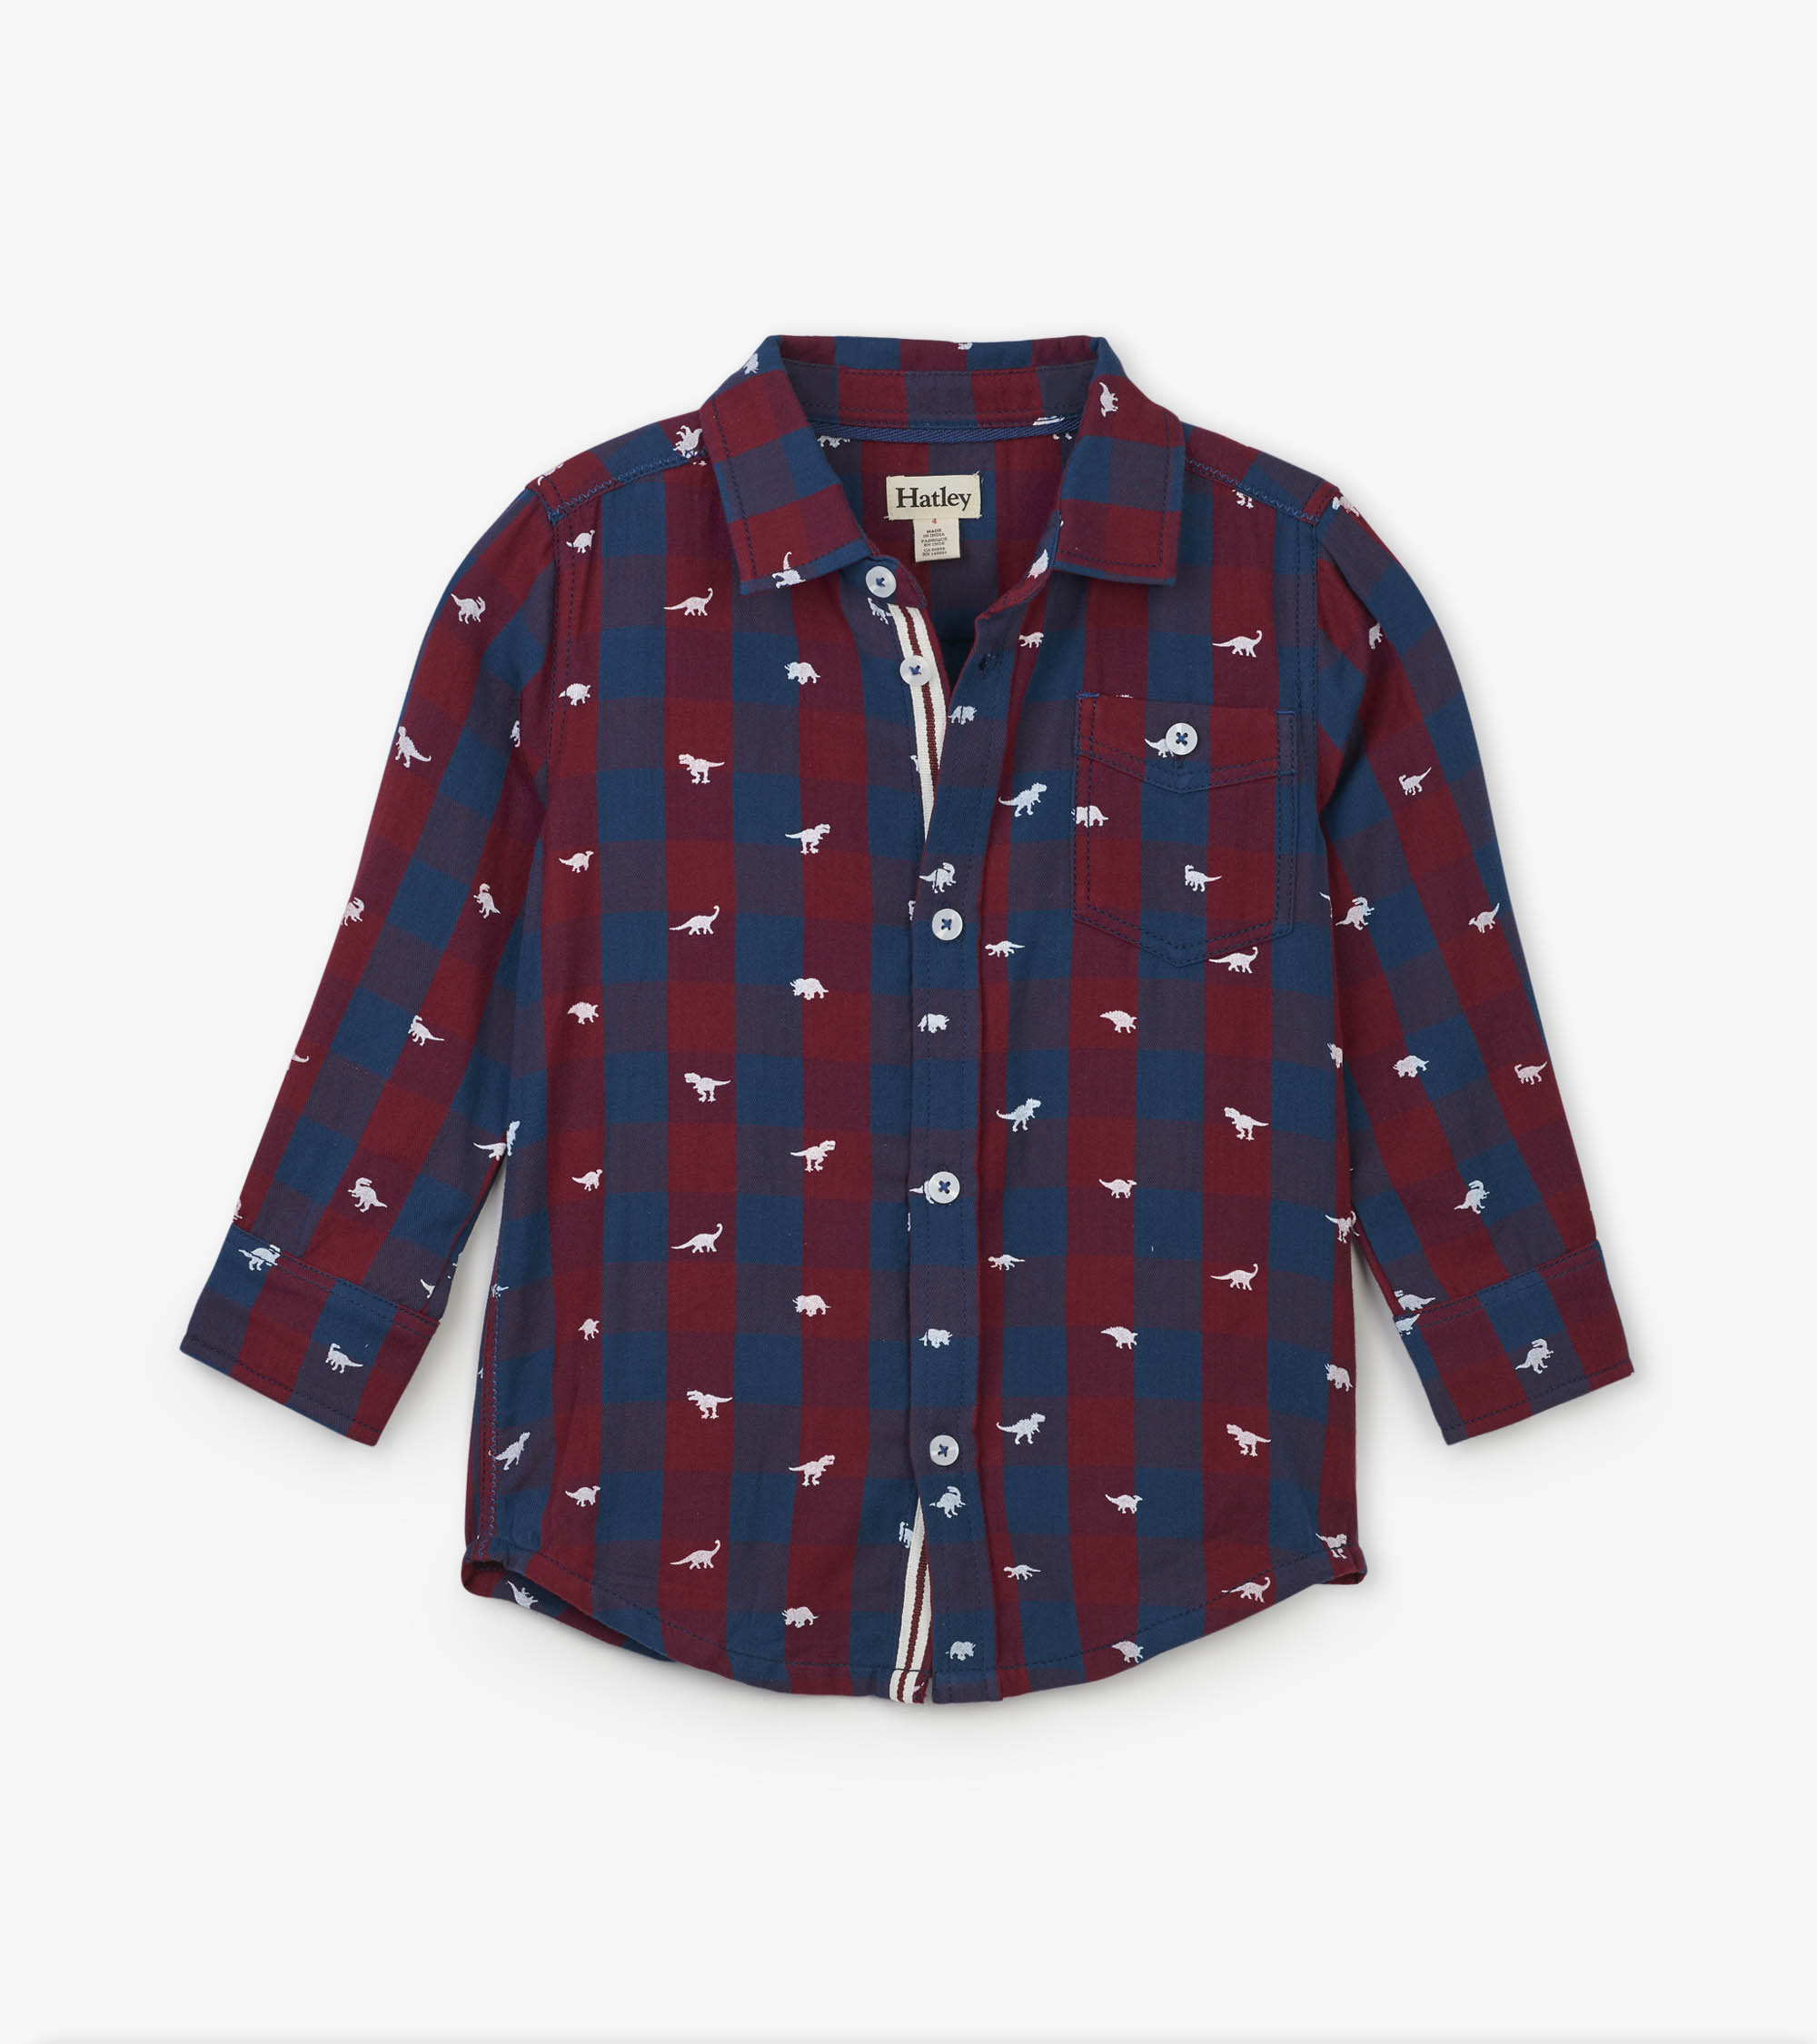 NOW £14.50 Hatley Silhouette Rex Shirt (Was £29)